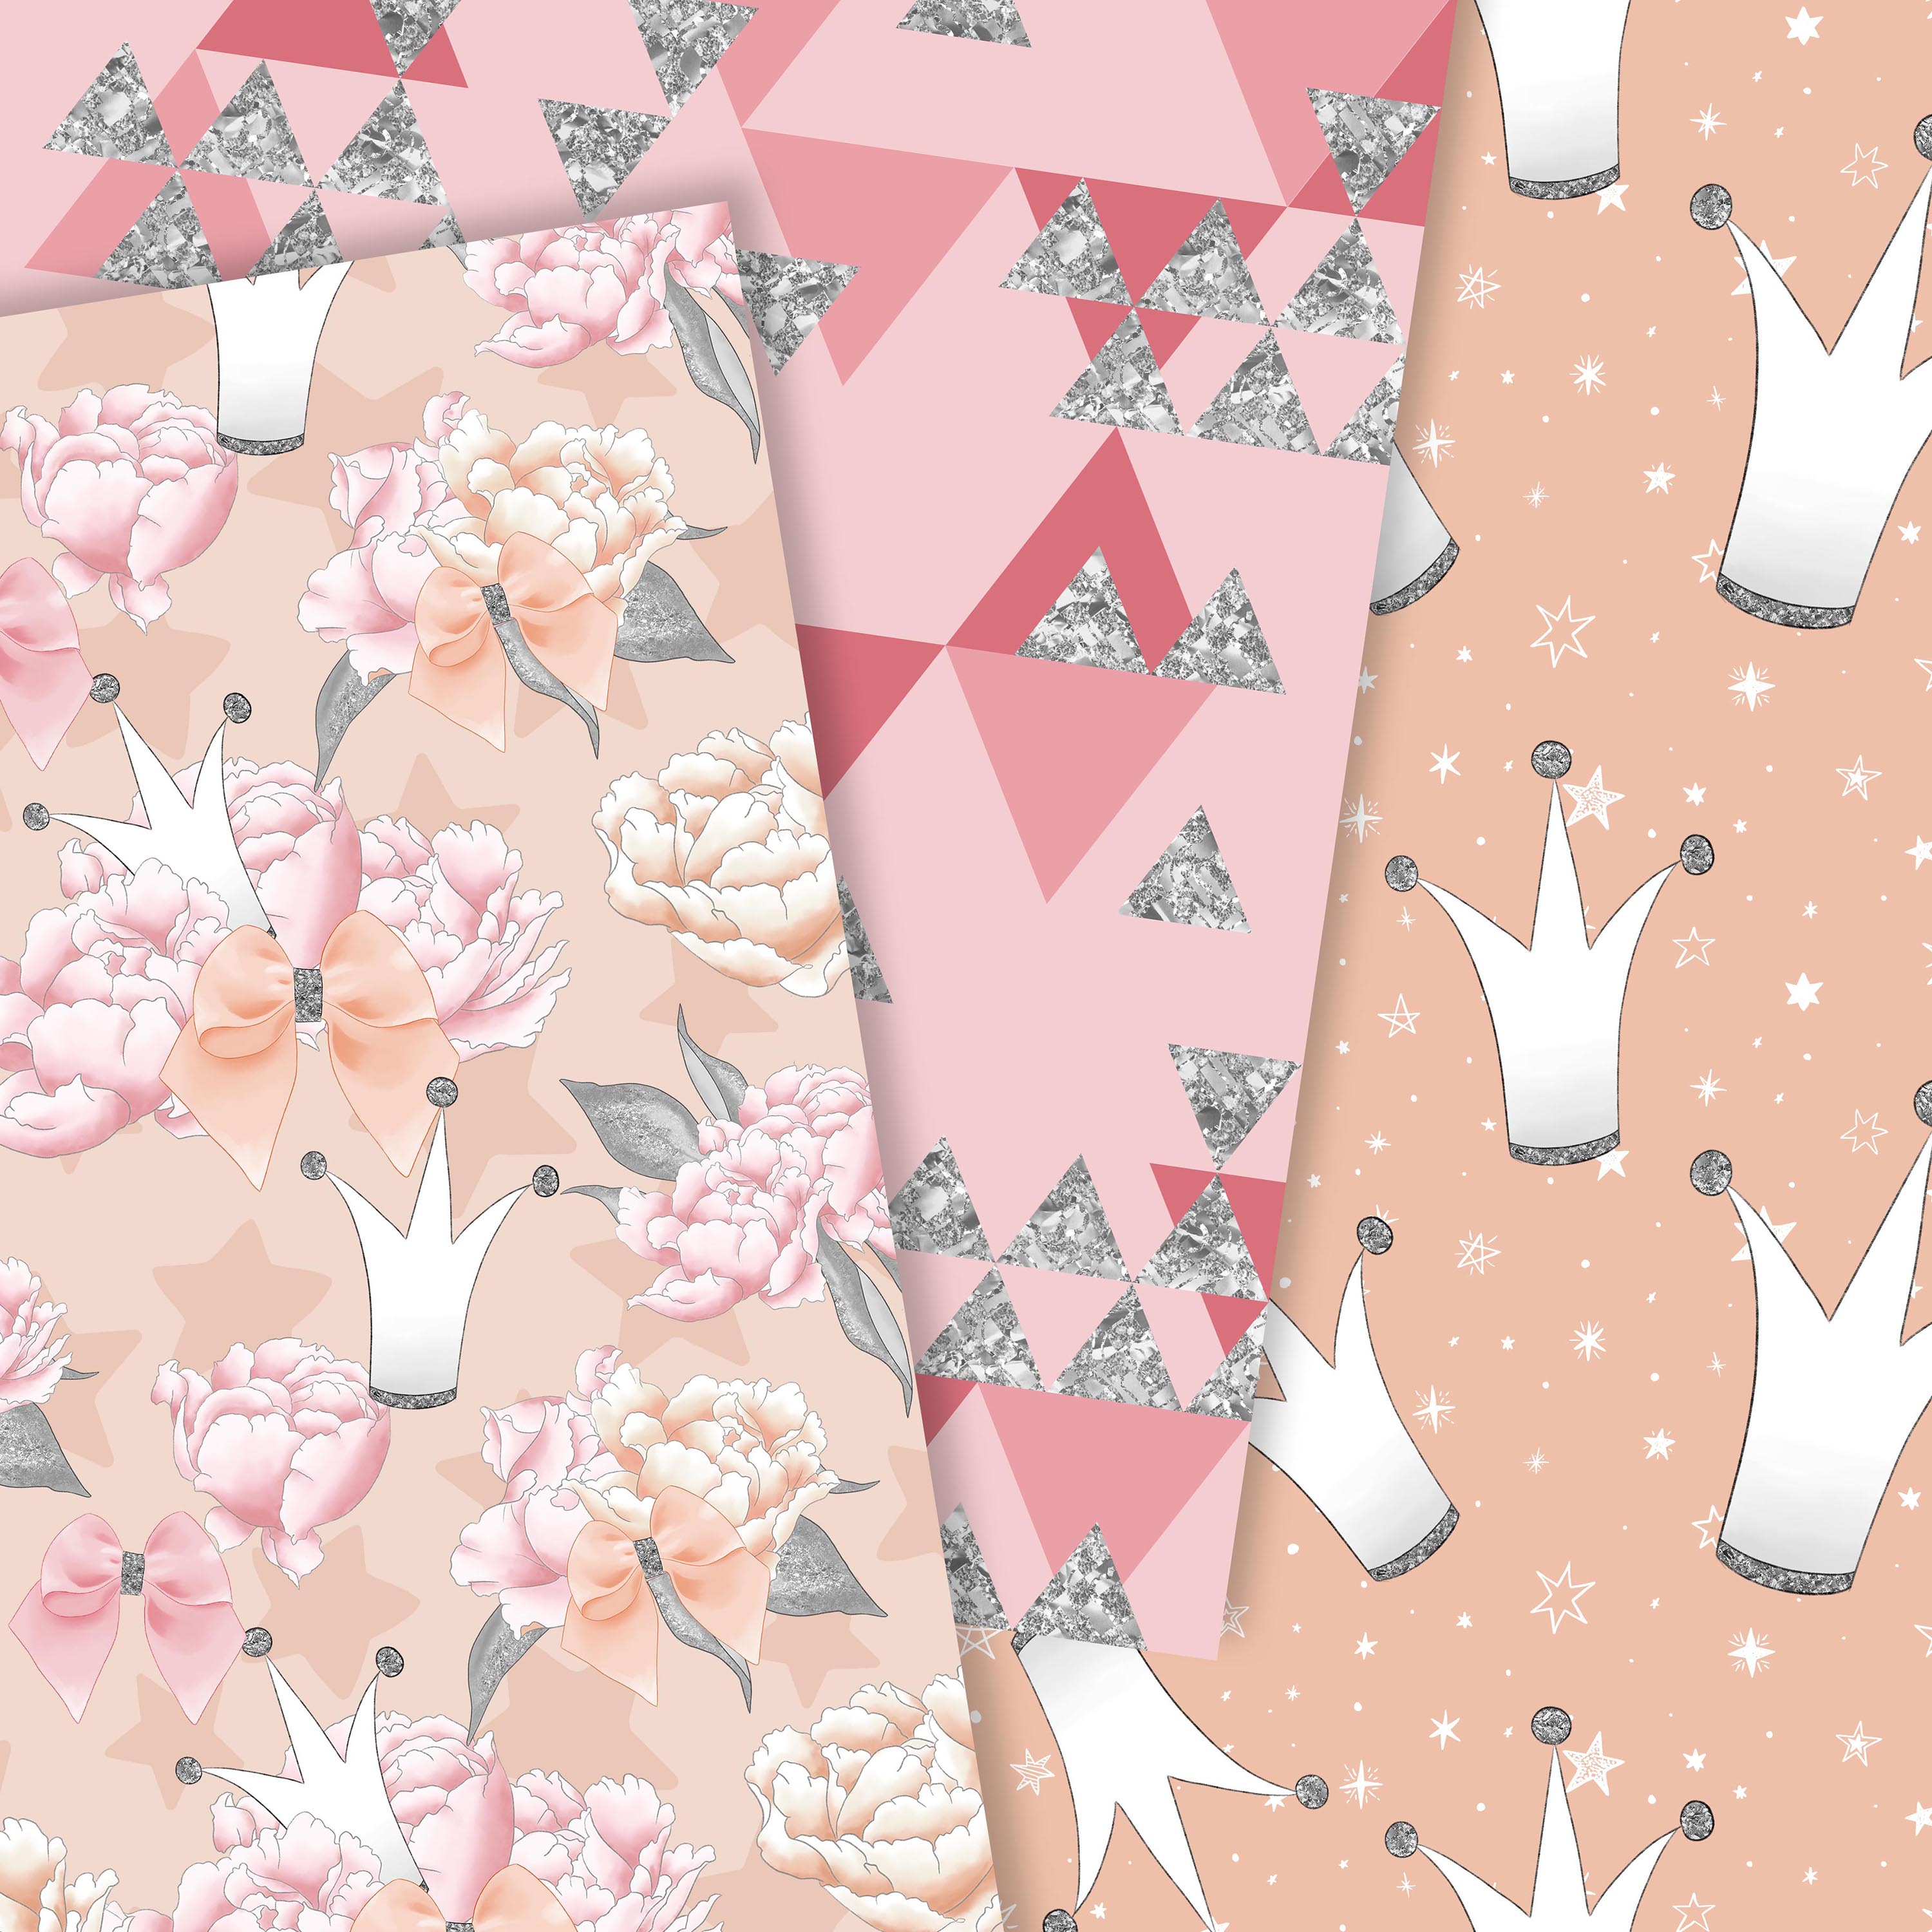 Wild swans patterns example image 4